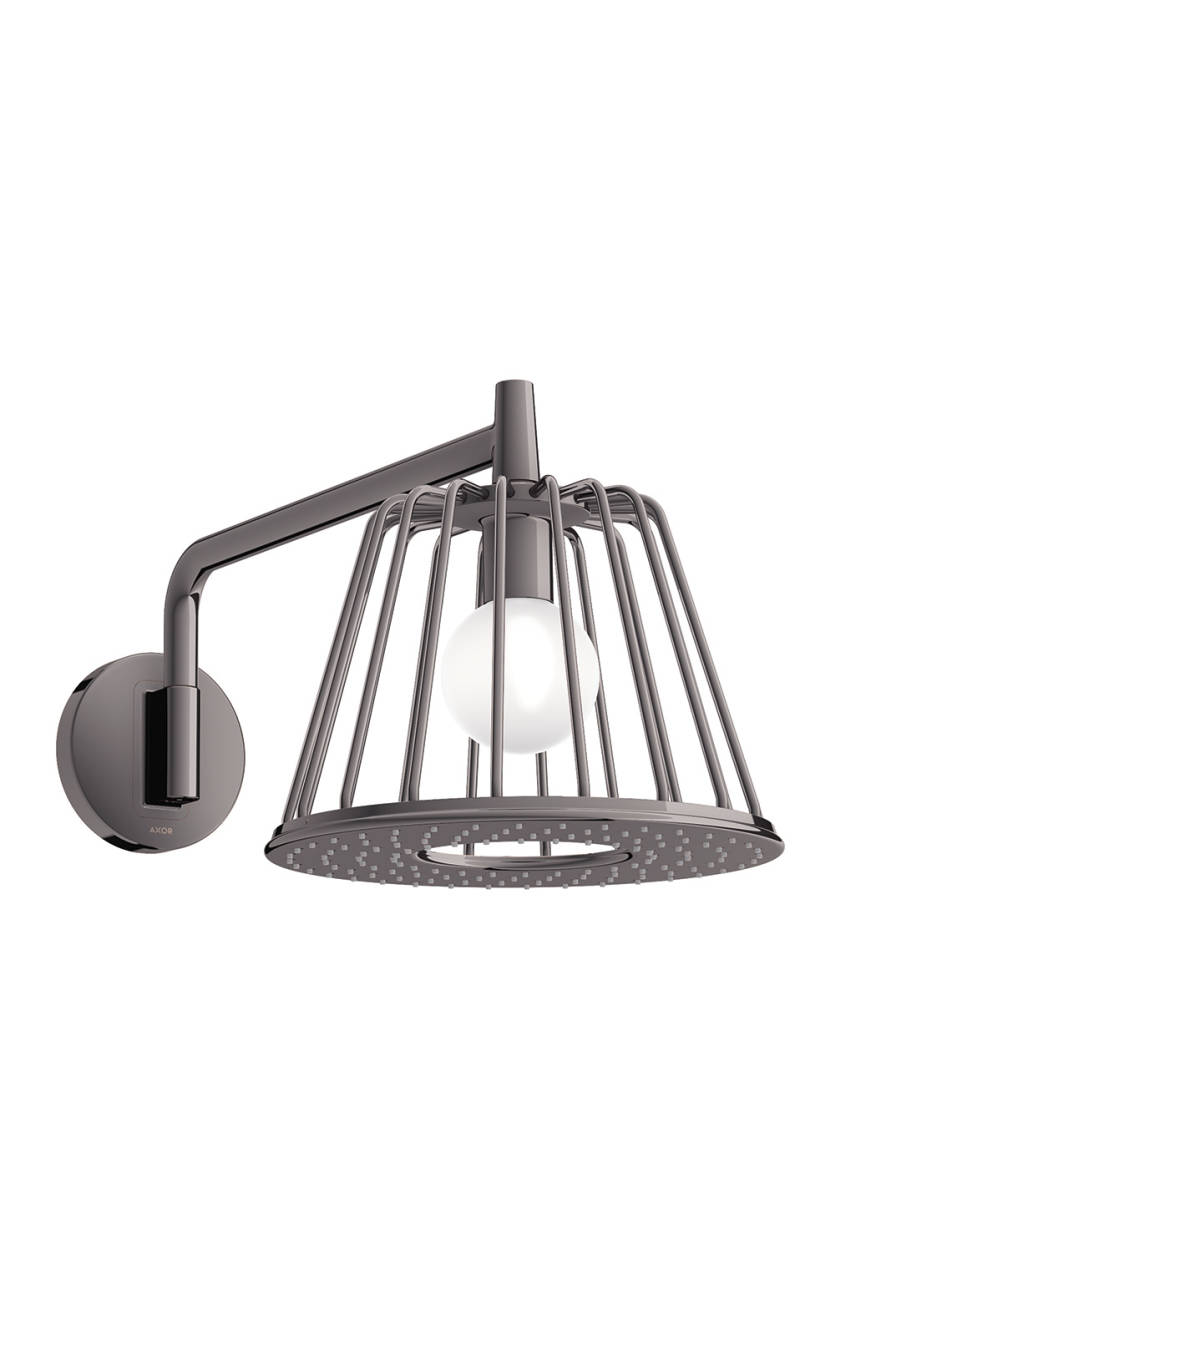 LampShower 275 1jet with shower arm, Polished Black Chrome, 26031330